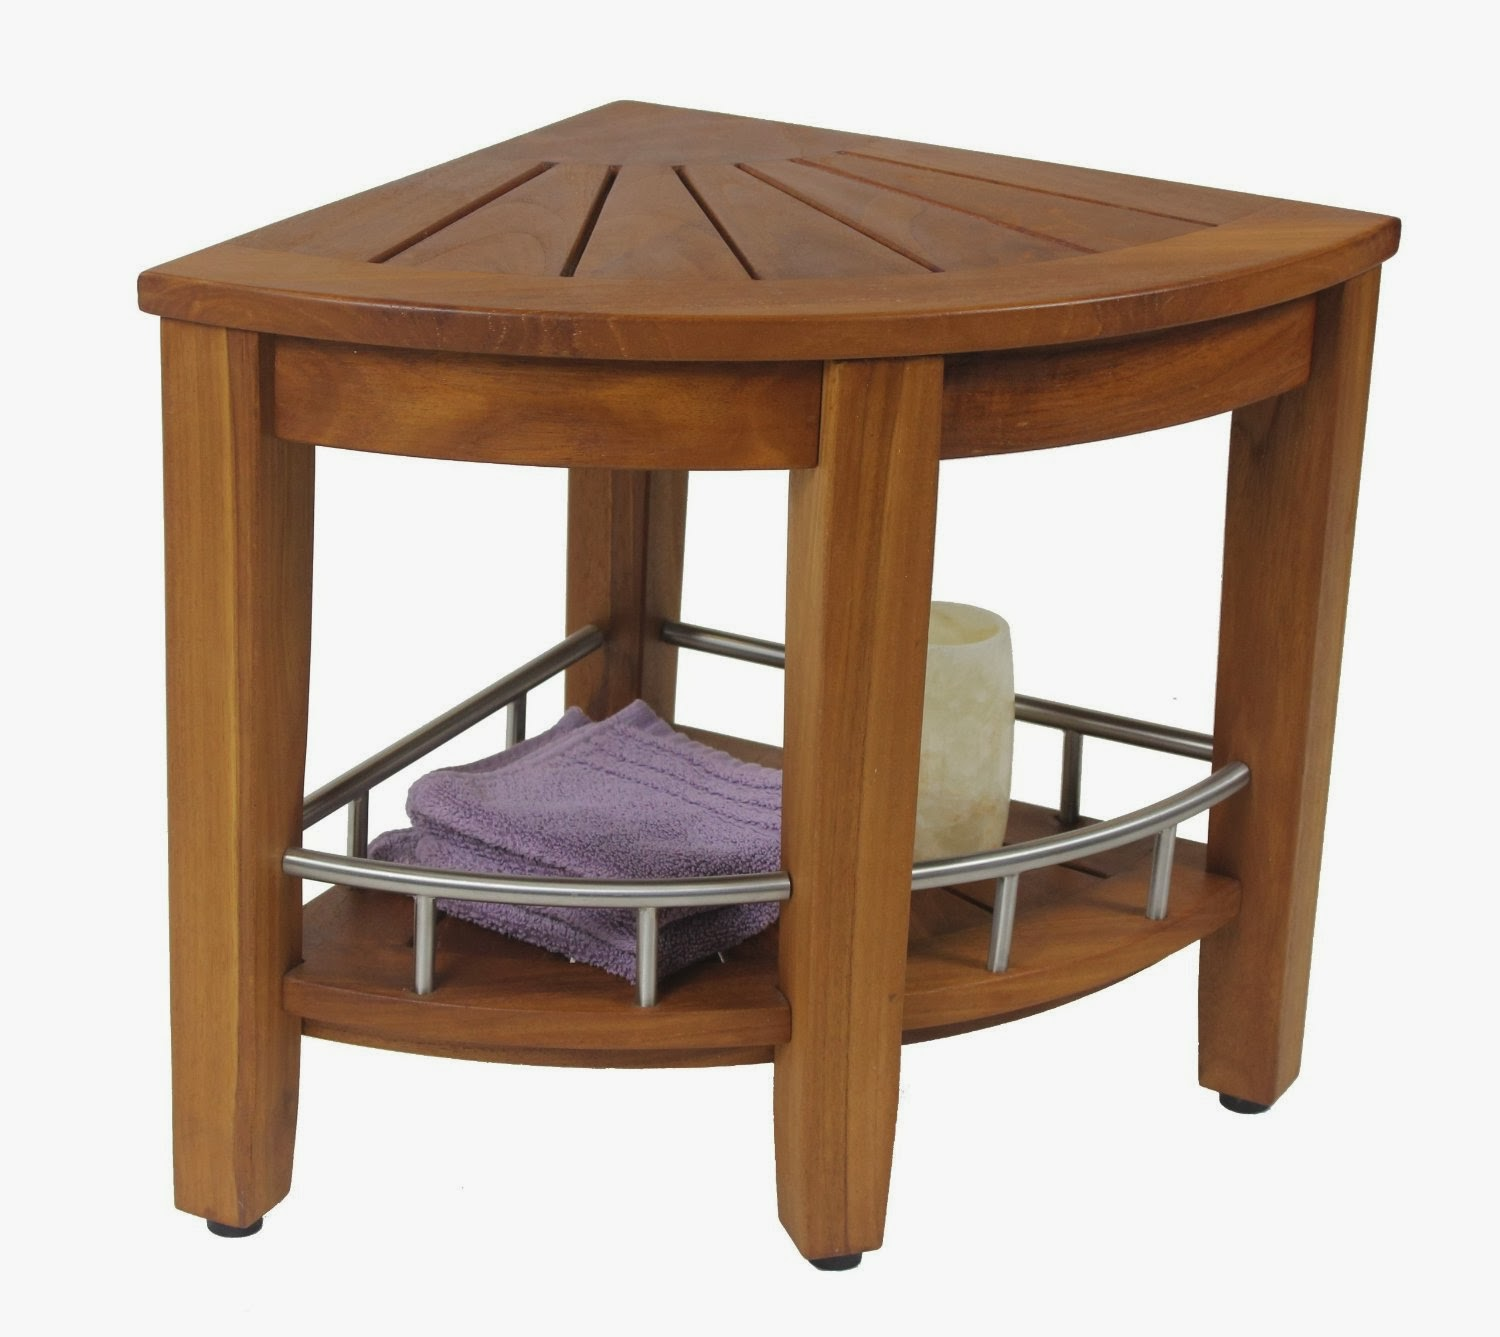 Teak bench with storage is essential for your household ...